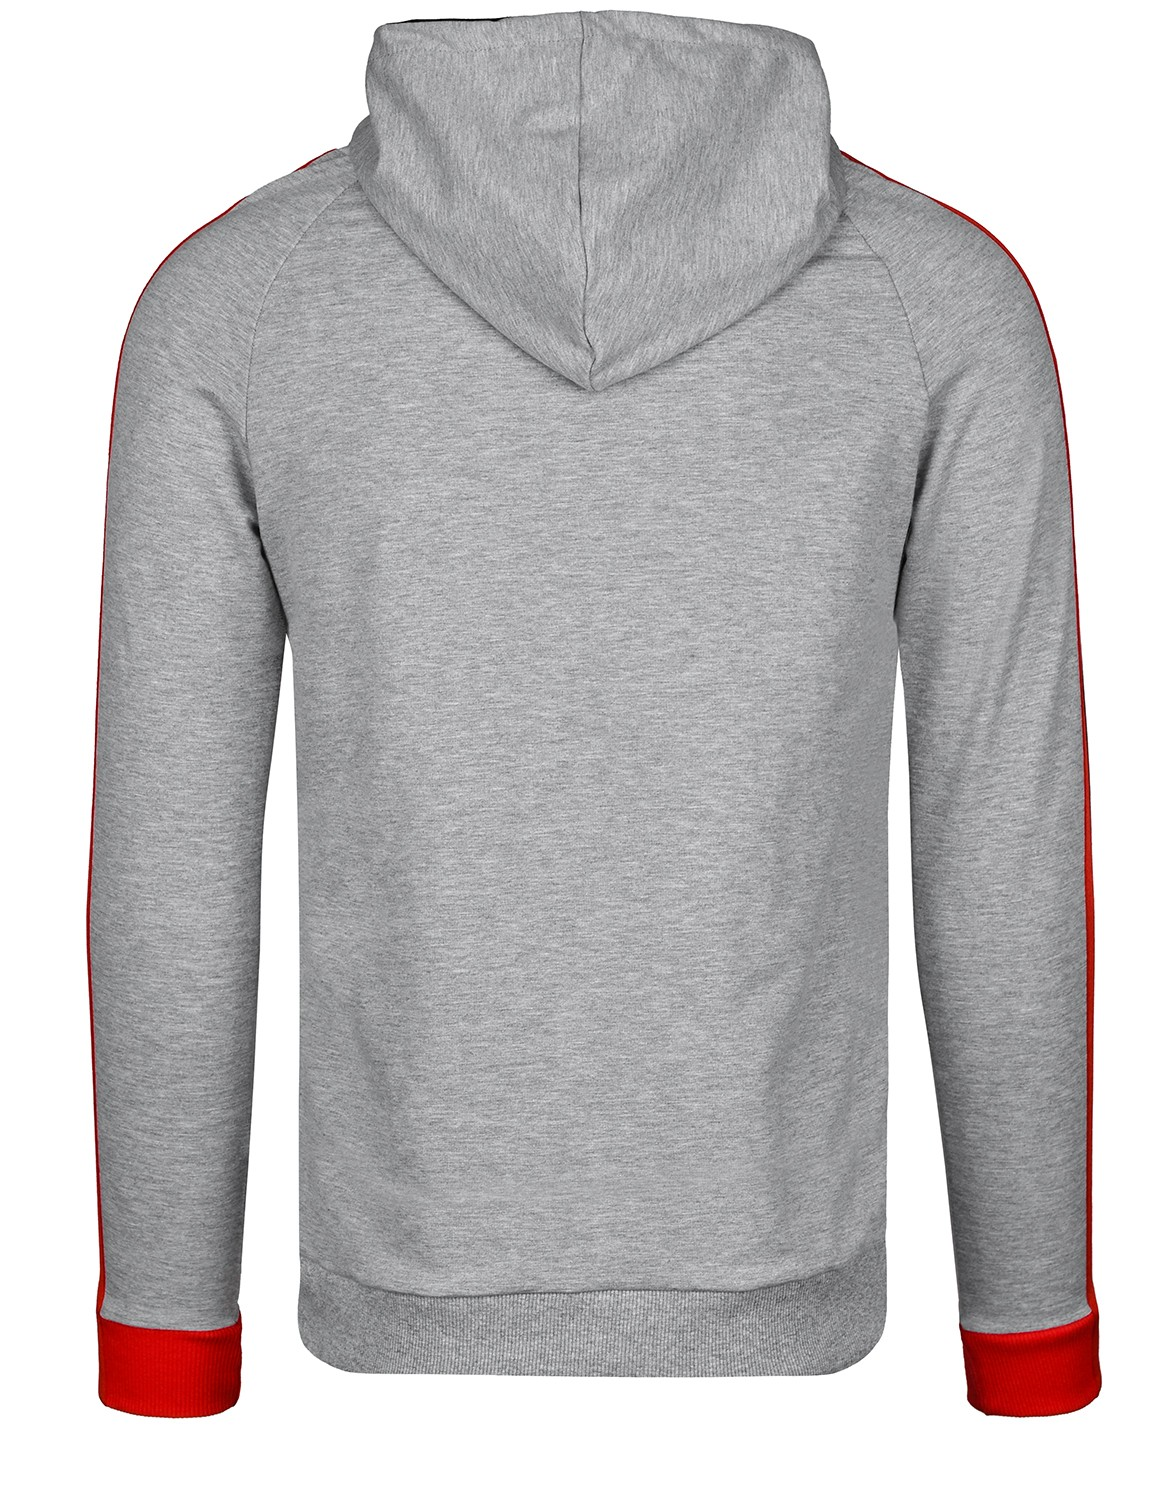 Sweatshirt OUTSTANDING Melange Light Grey